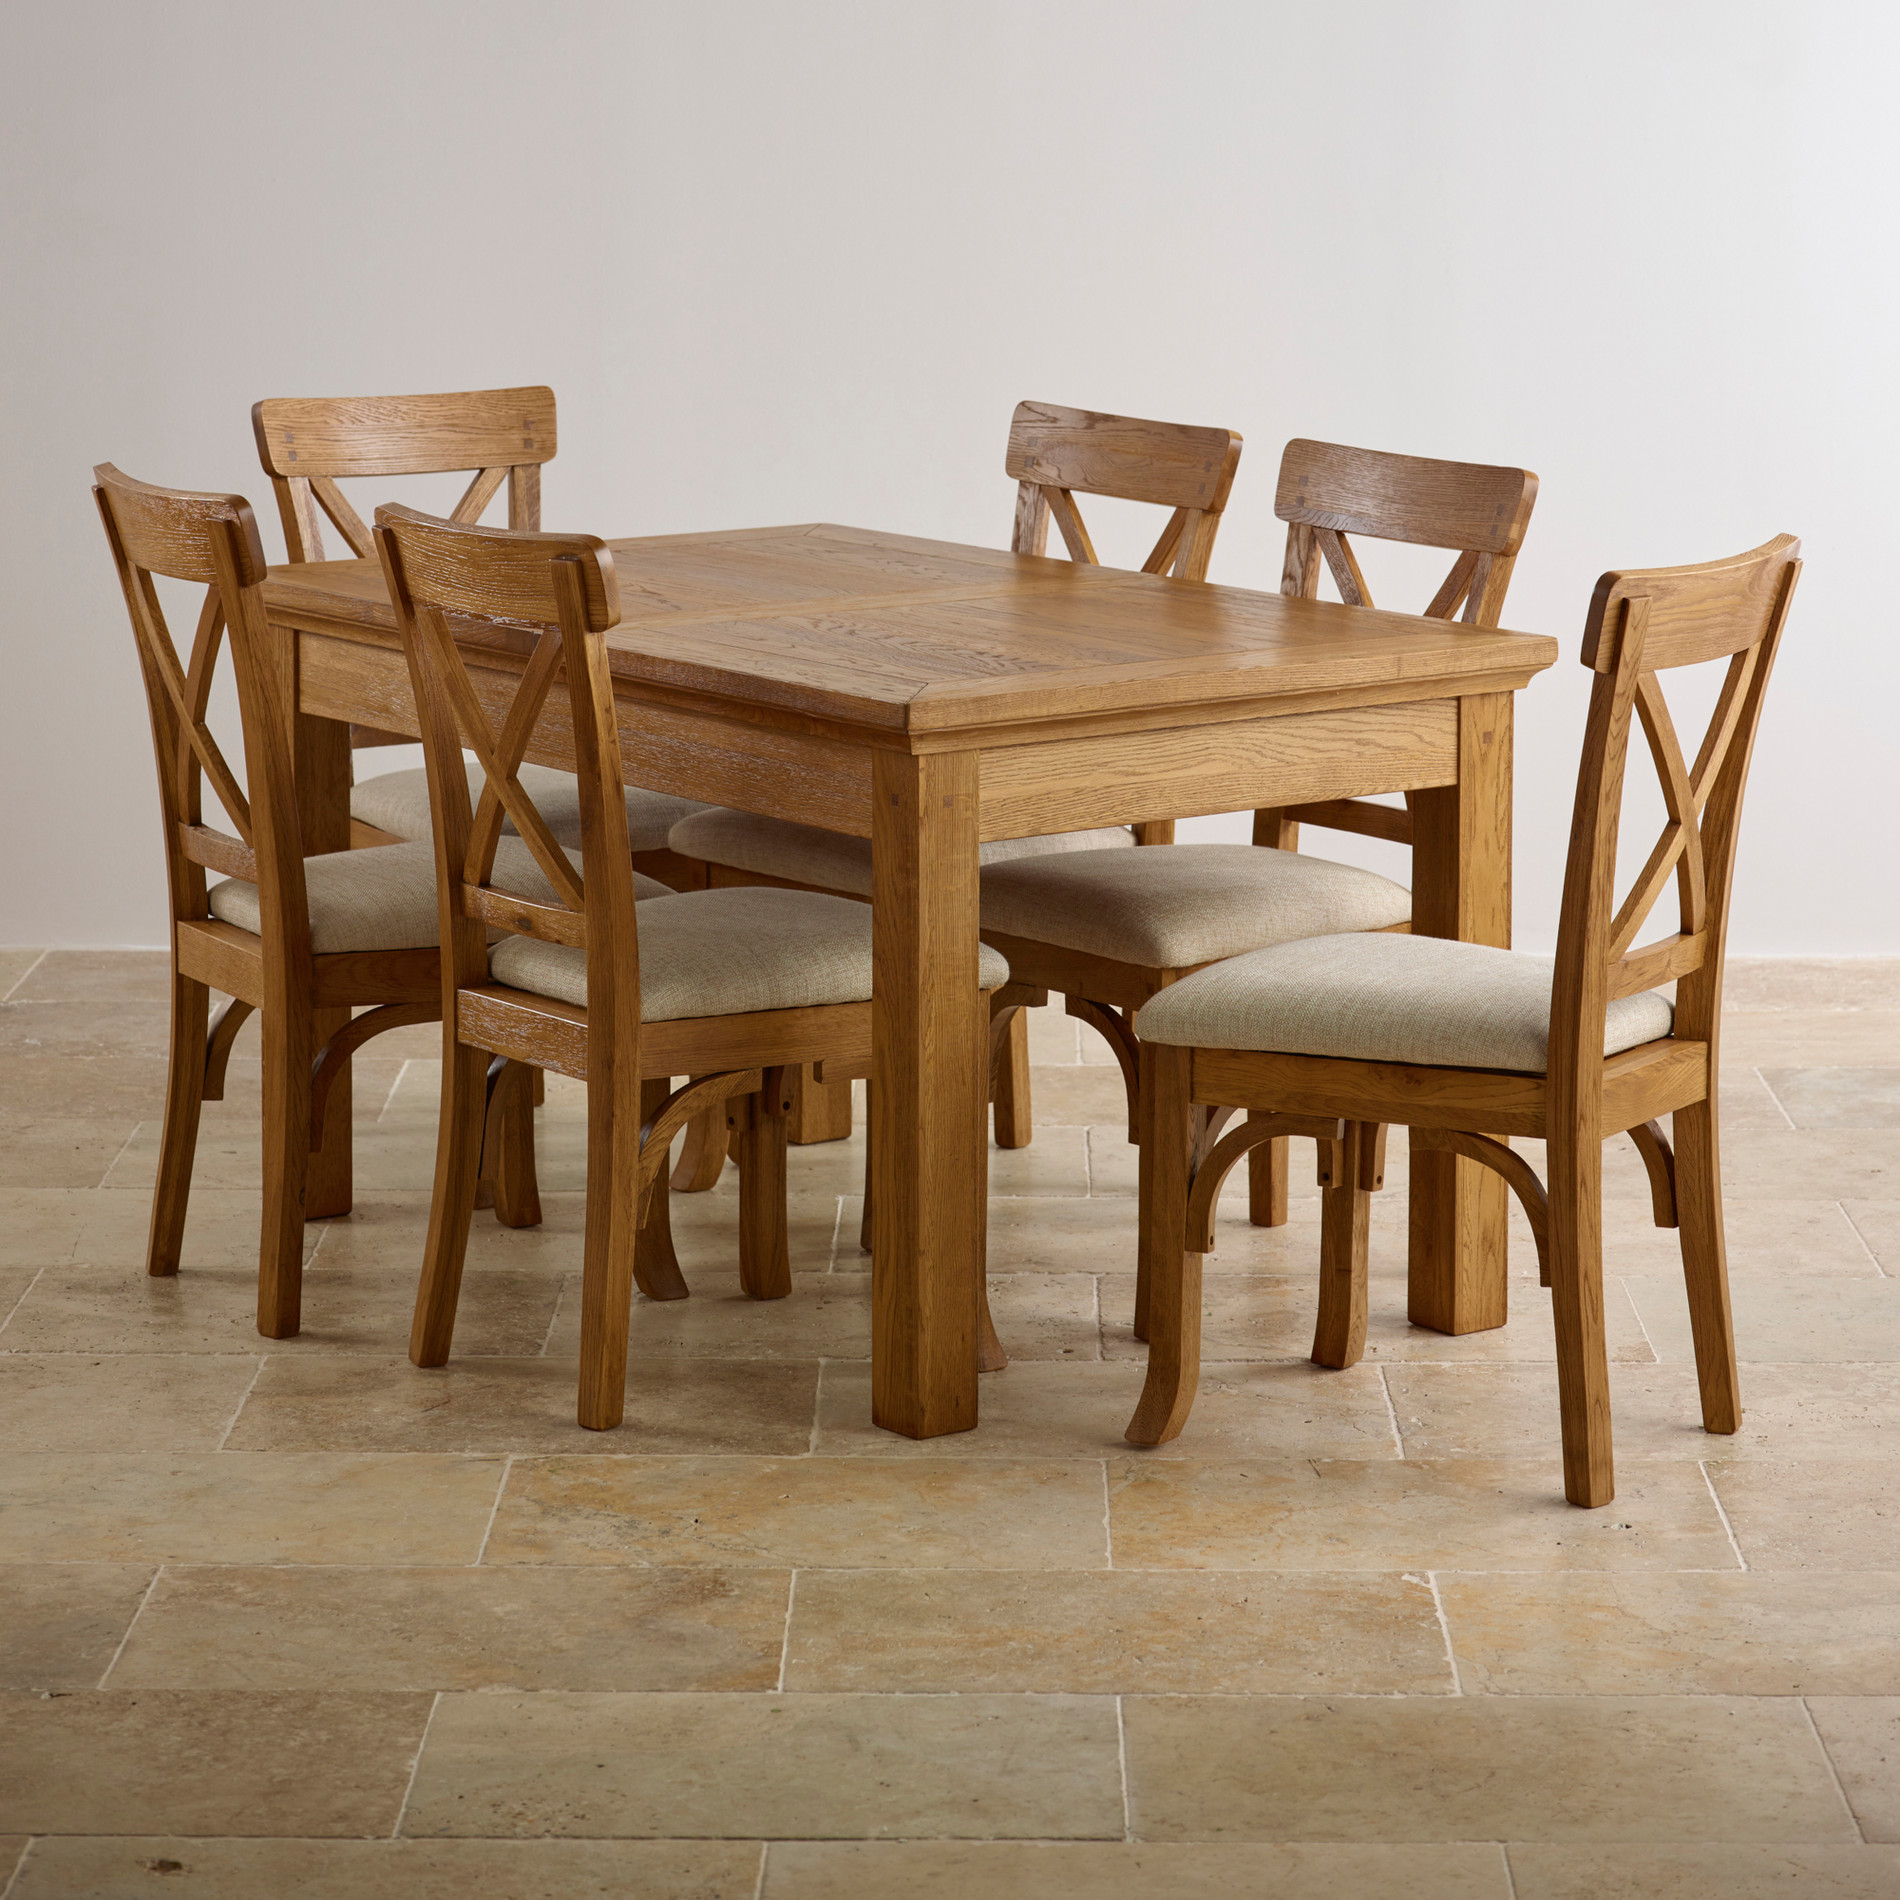 How to get the oak dining sets?